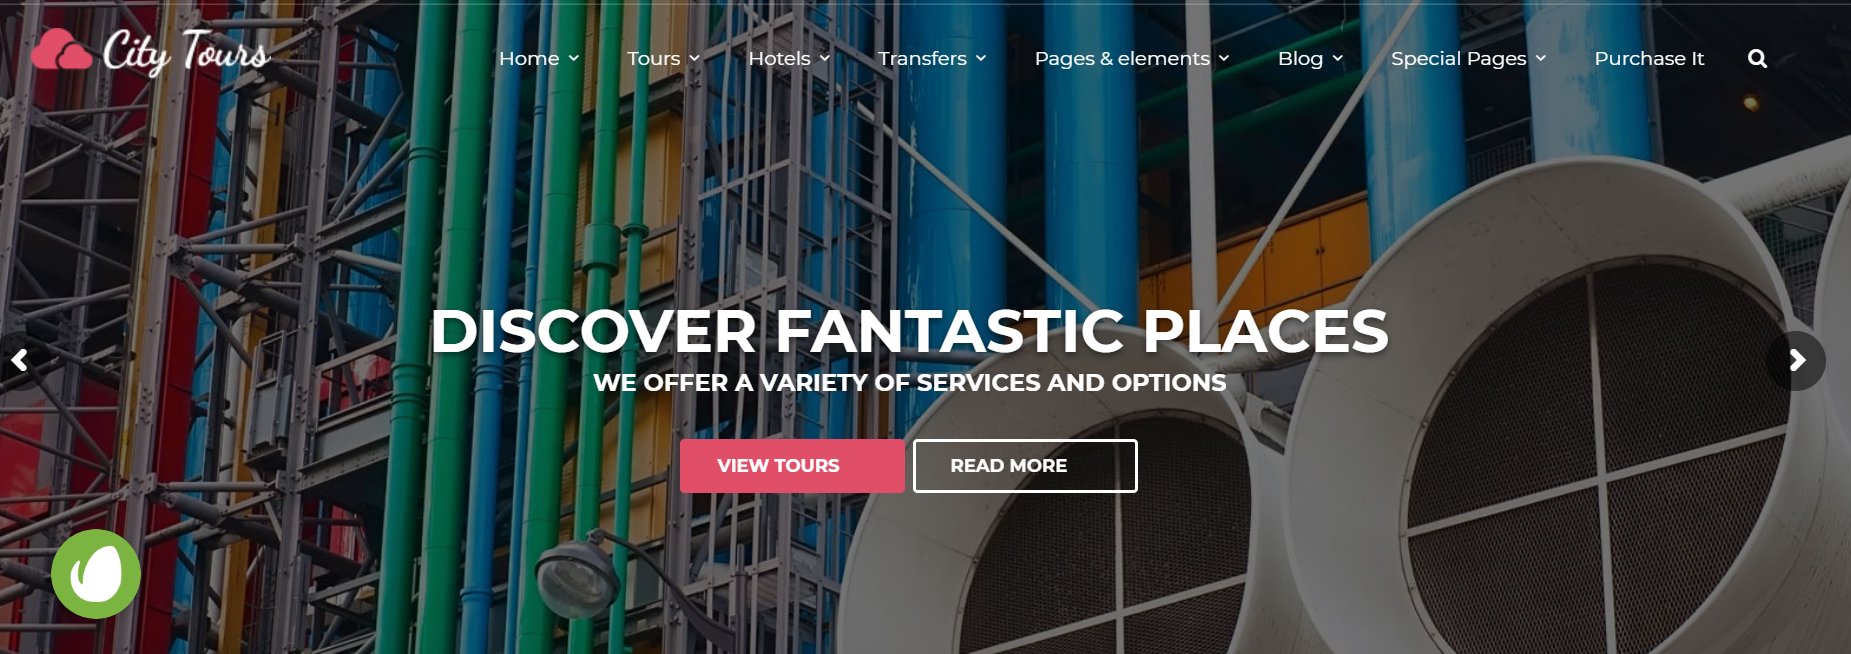 Best Travel Themes for a WordPress Website